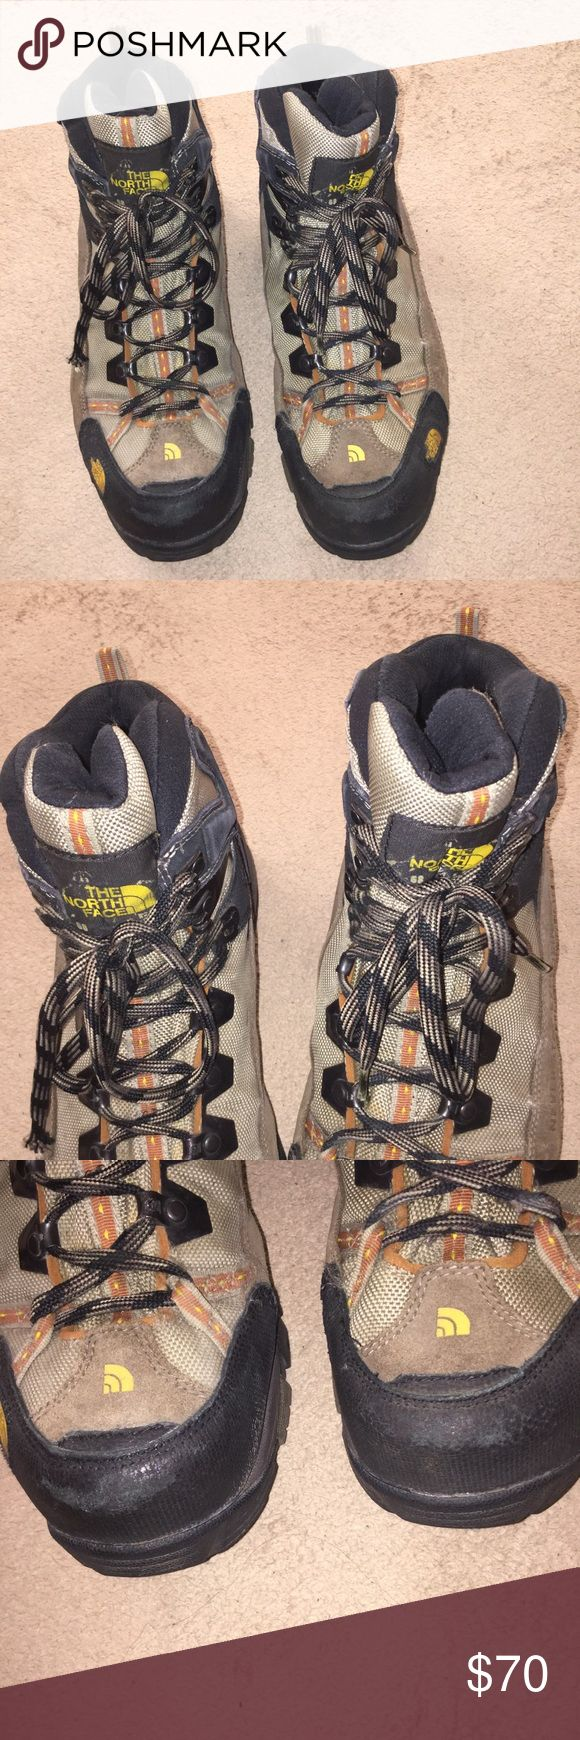 THE NORTH FACE GORE TEX MEN'S BOOTS.  SIZE 10 BOOTS SHOW SIGNS OF WEAR.  SCRAPES AND CREASES.  PLEASE READ MY LISTING AND VIEW MY PICTURES.  Best offer The North Face Shoes Rain & Snow Boots